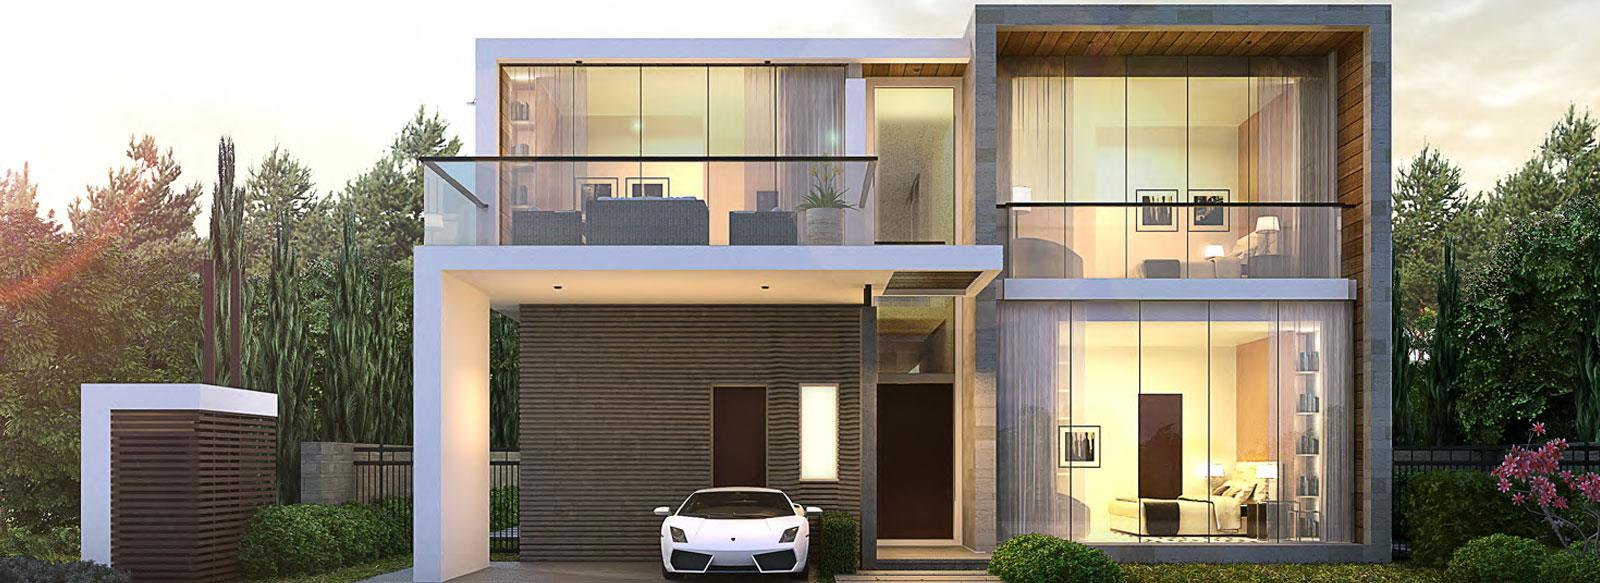 Luxury 3 & 5 Bedroom Townhouses and Villas,<div>Starting From AED 5,790,000</div>